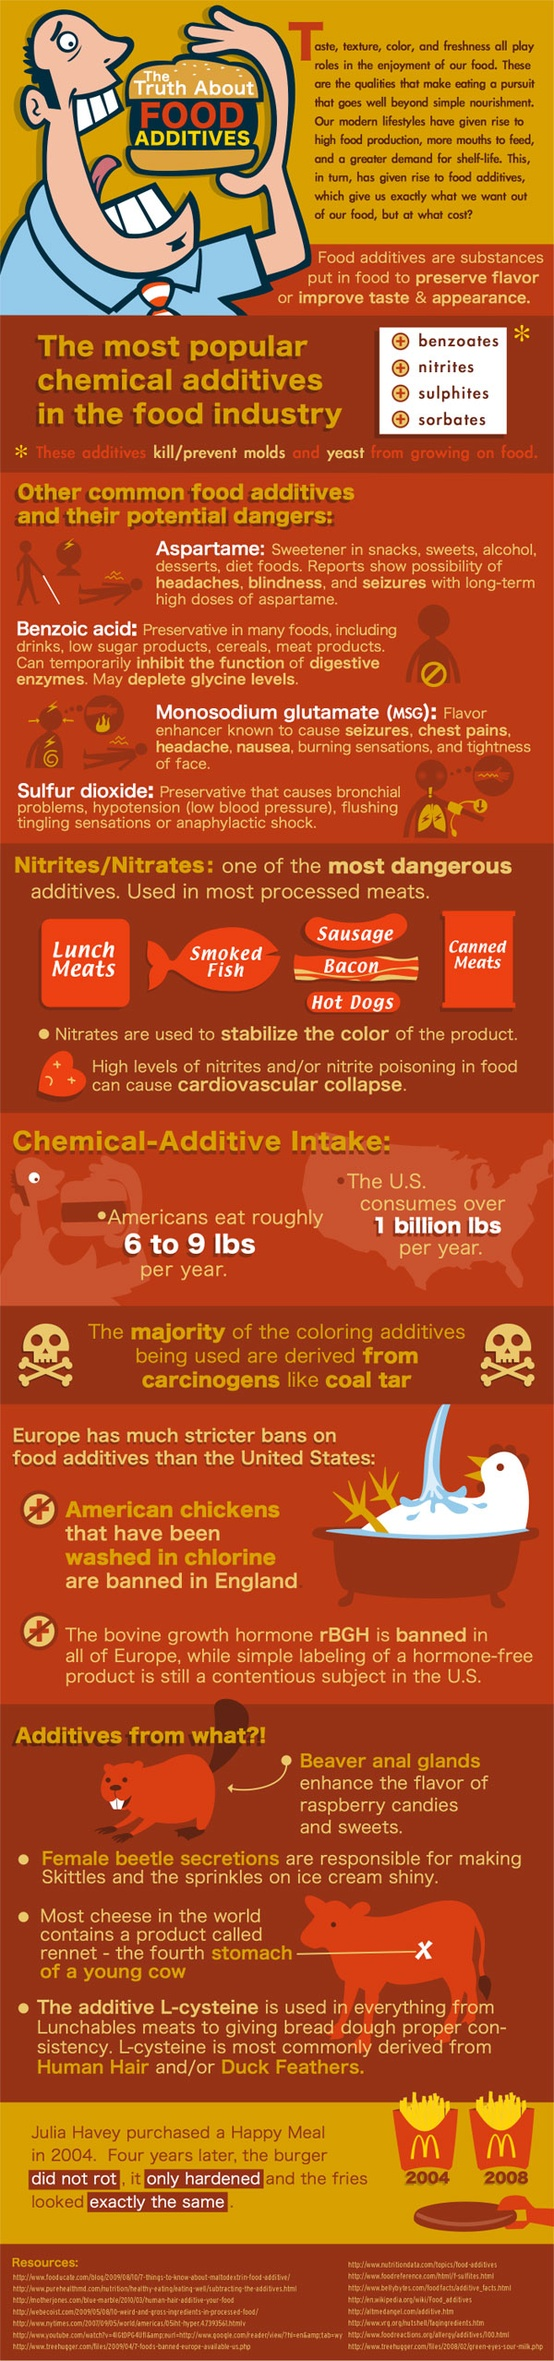 Shocking Food Additive Facts